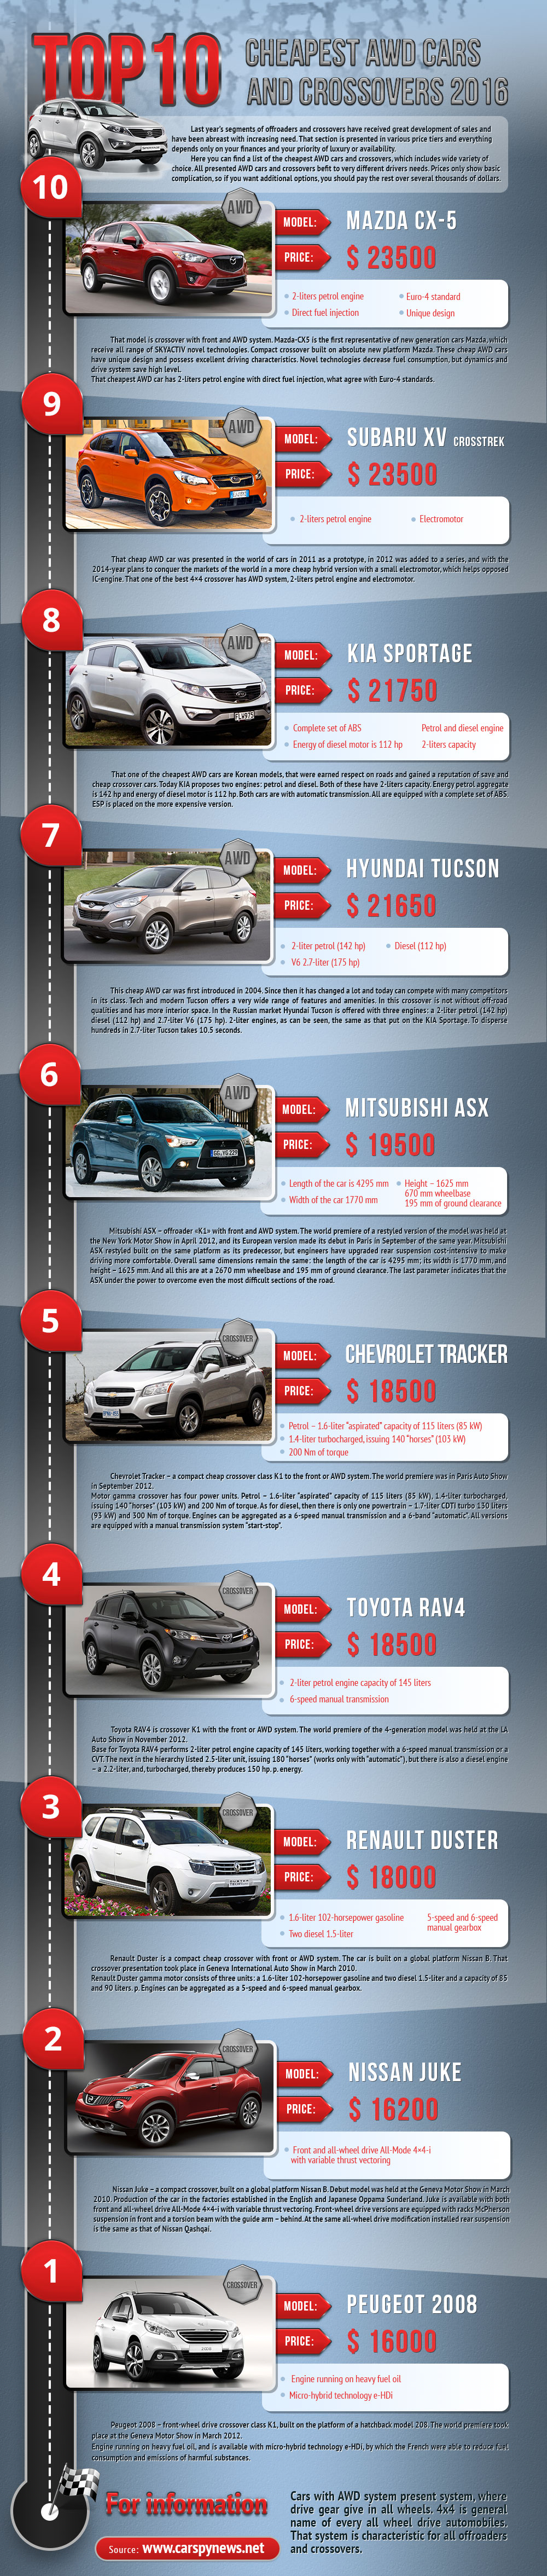 Top 10 cheapest AWD cars and crossovers 2016